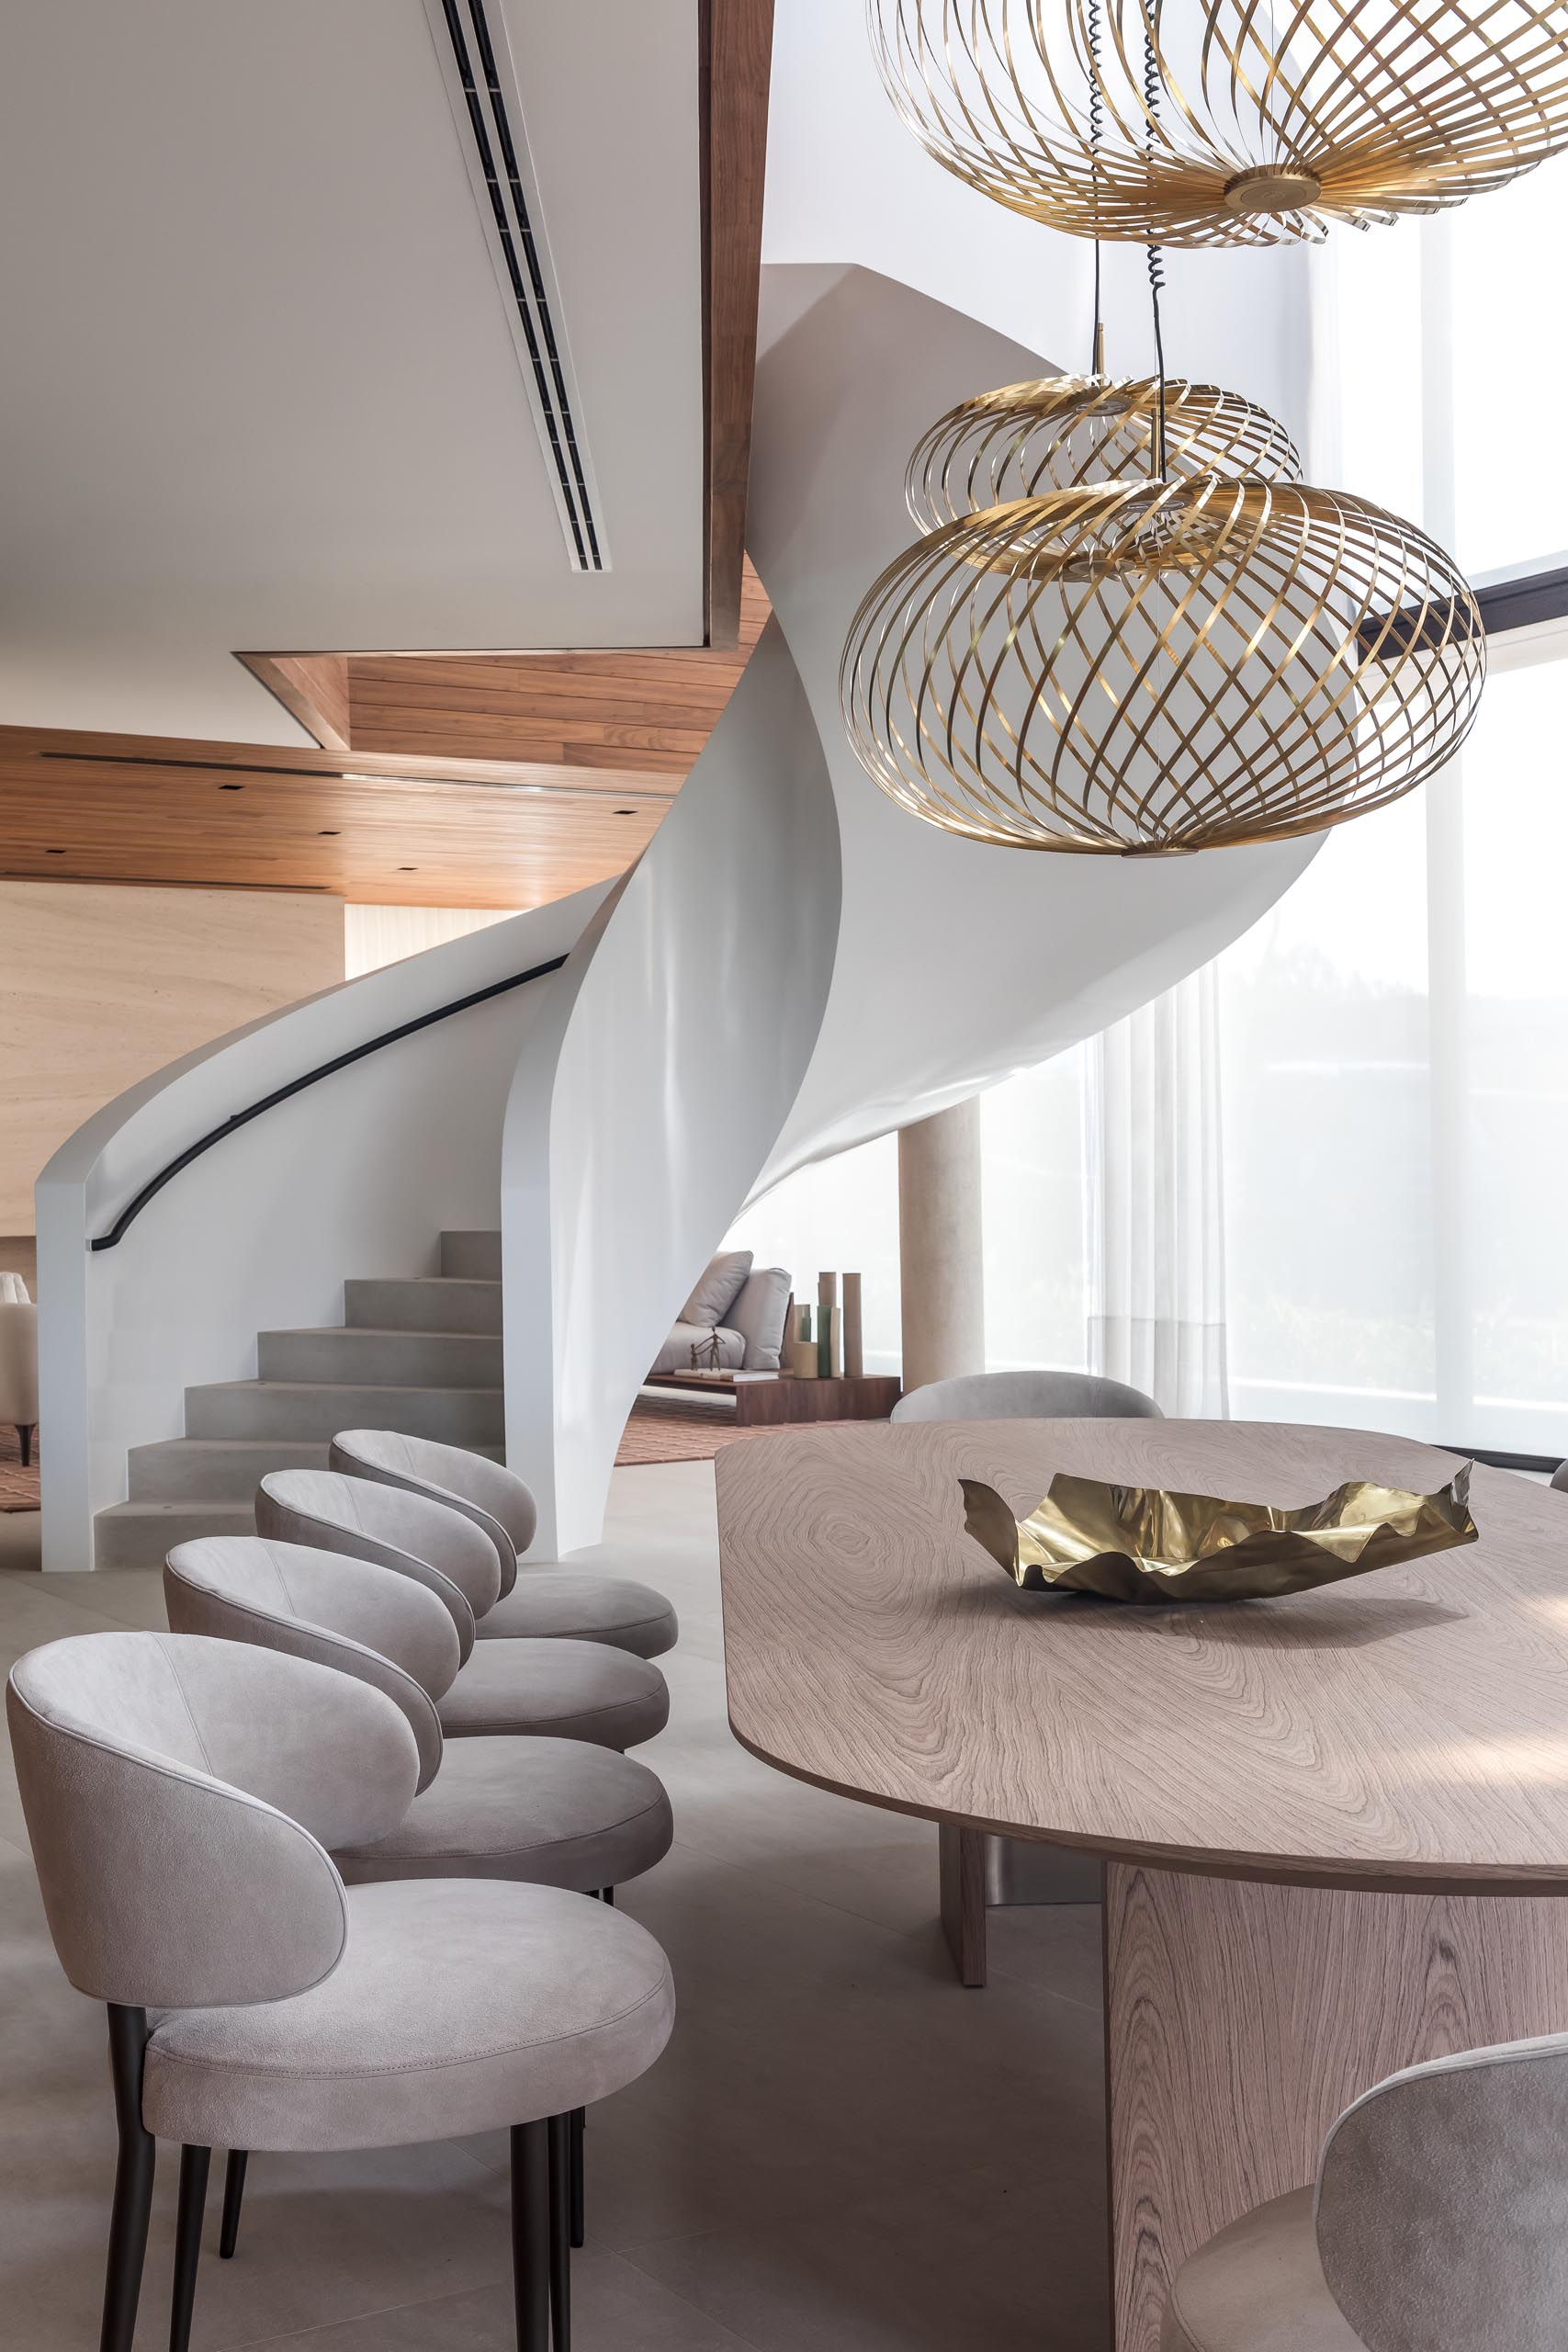 Sculptural metallic pendant lights hang above the rounded dining table in this modern dining room.